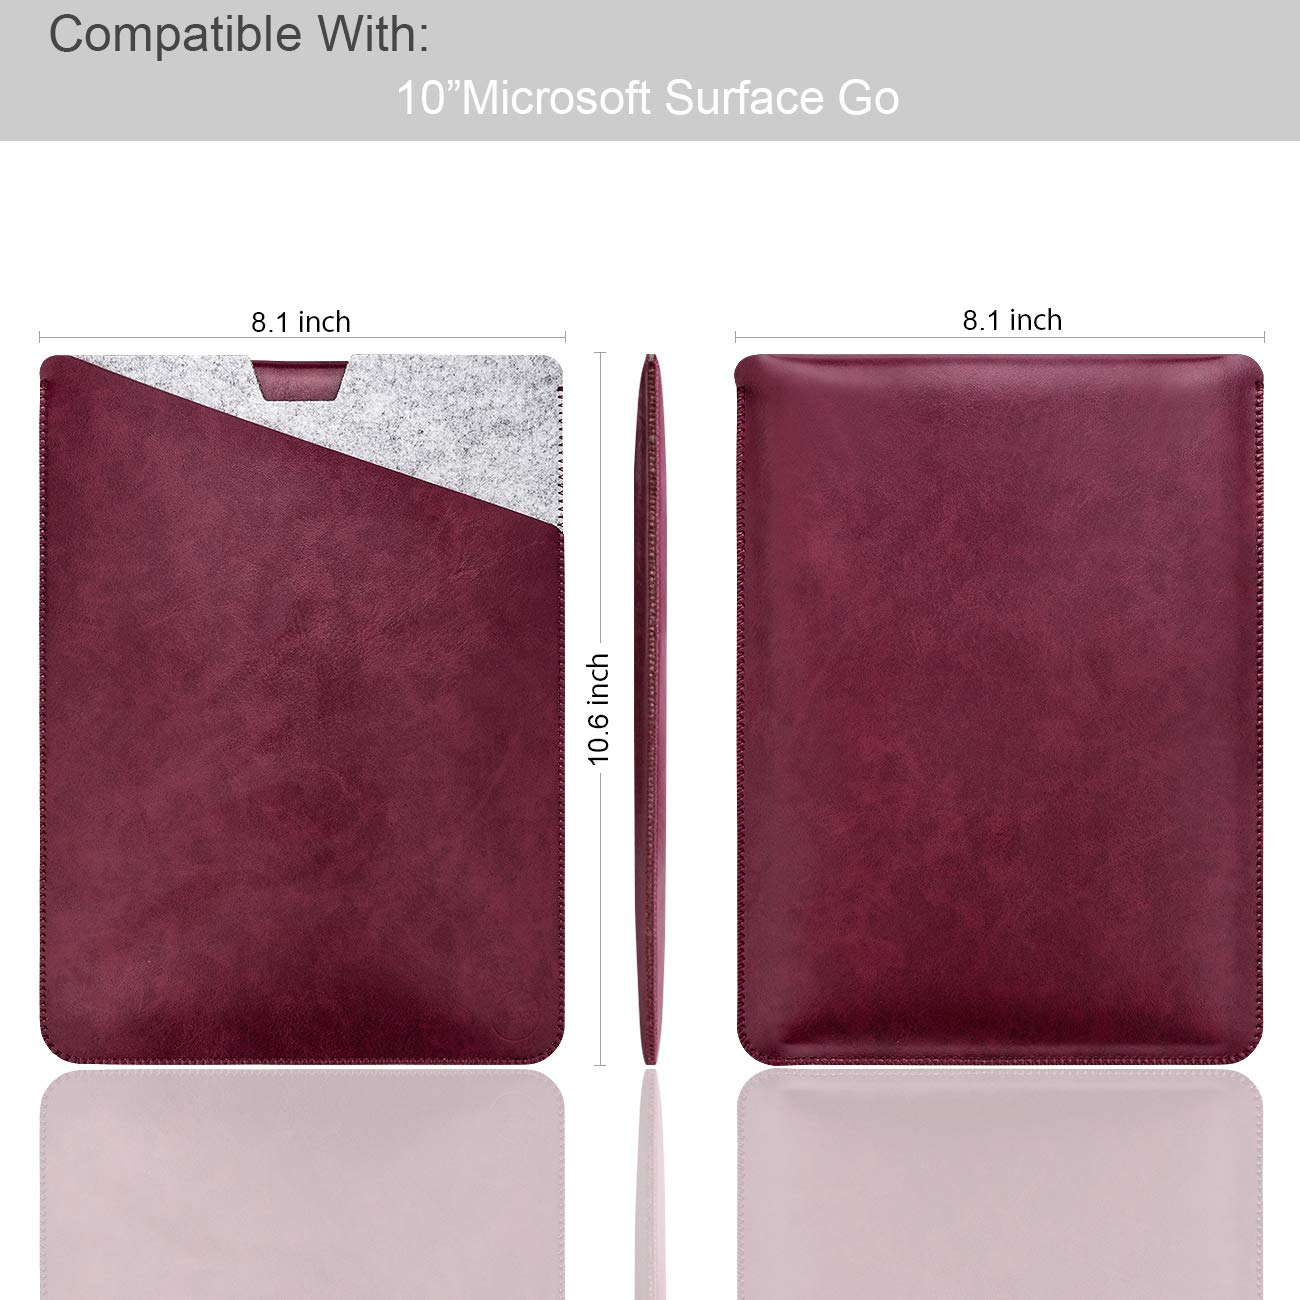 279cb33d1841 WALNEW 10-Inch Sleeve Case for Surface Go - Dual Pocket Protective tablet  Case Cover Carrying Laptop Bag with Extendable Mouse Pad, Wine Red:  Amazon.co.uk: ...